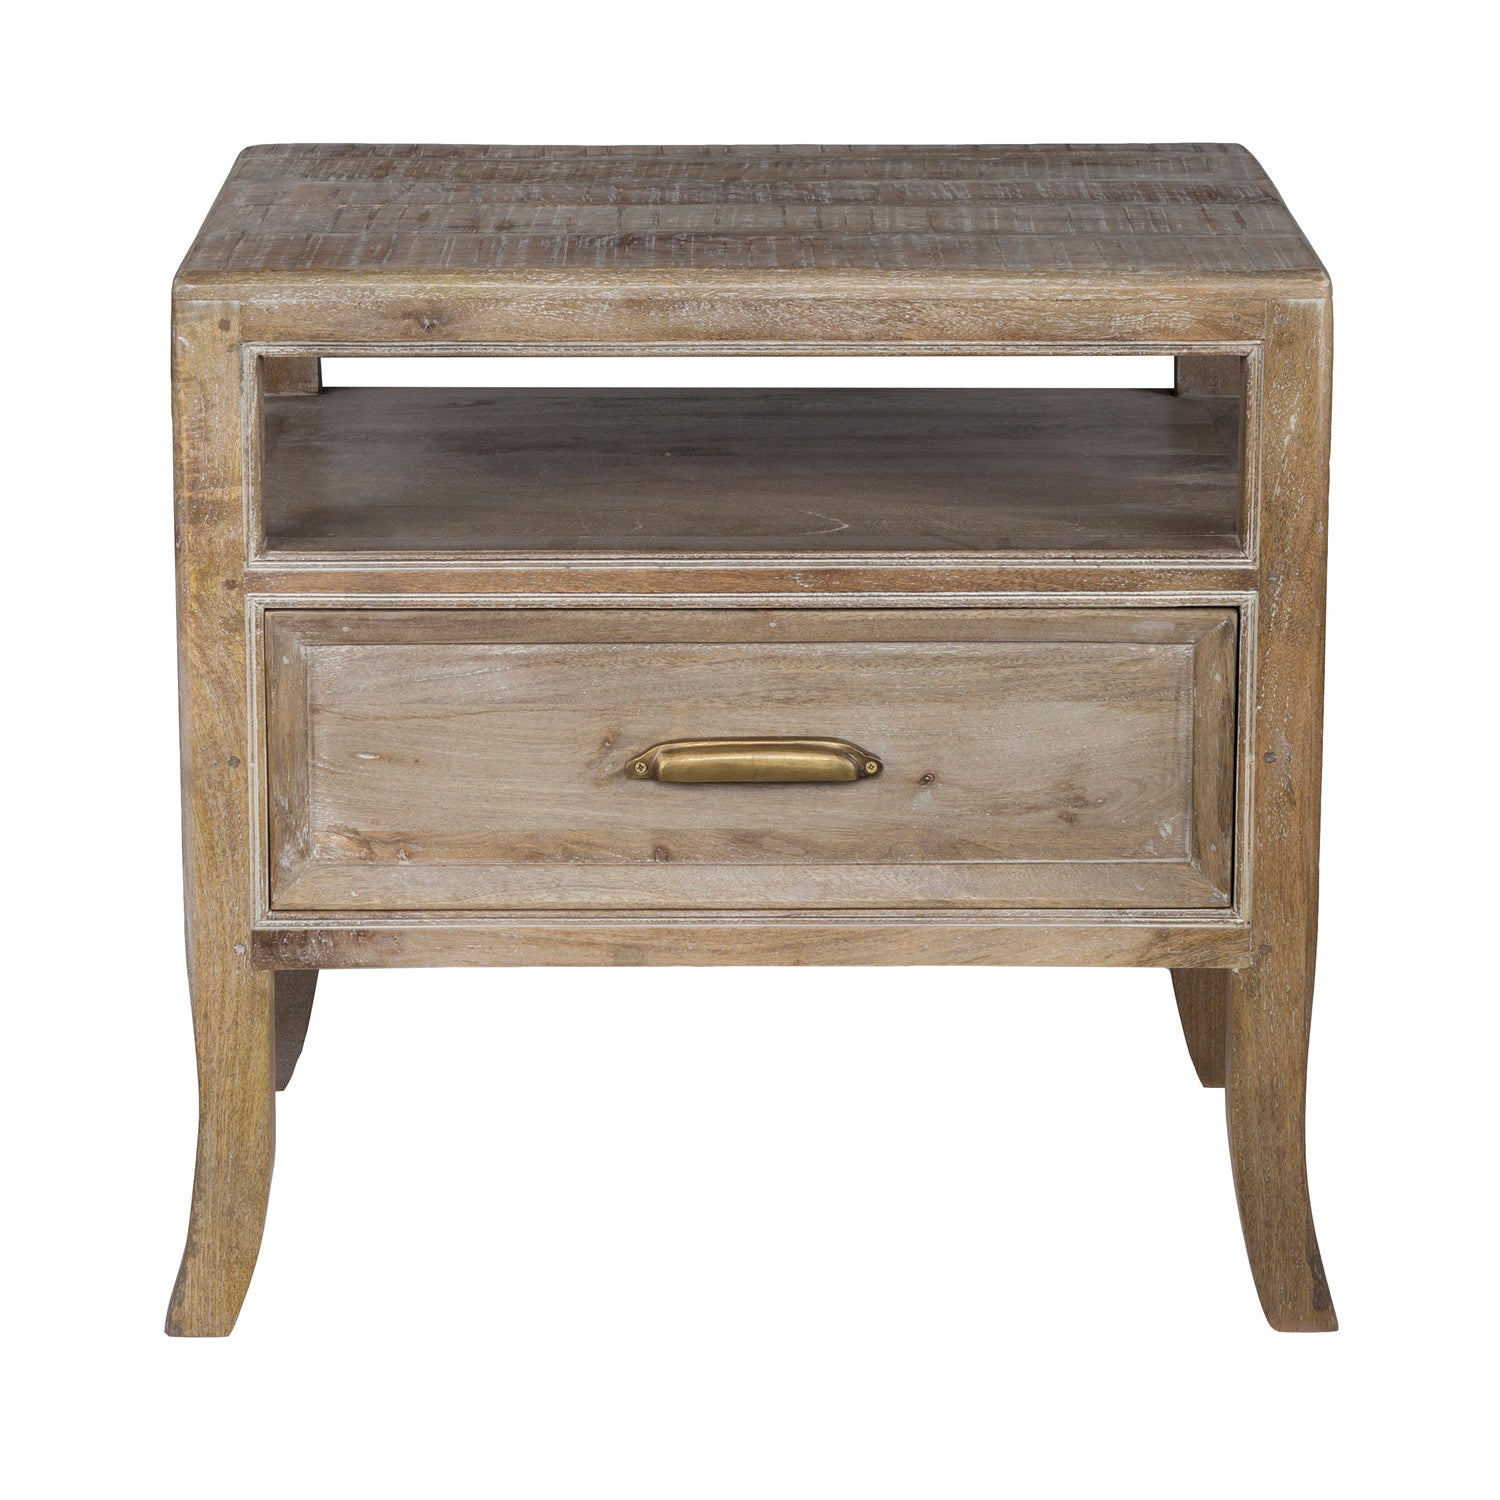 Emily Hand Crafted Solid Wood 1 Drawer Nightstand By Kosas Home